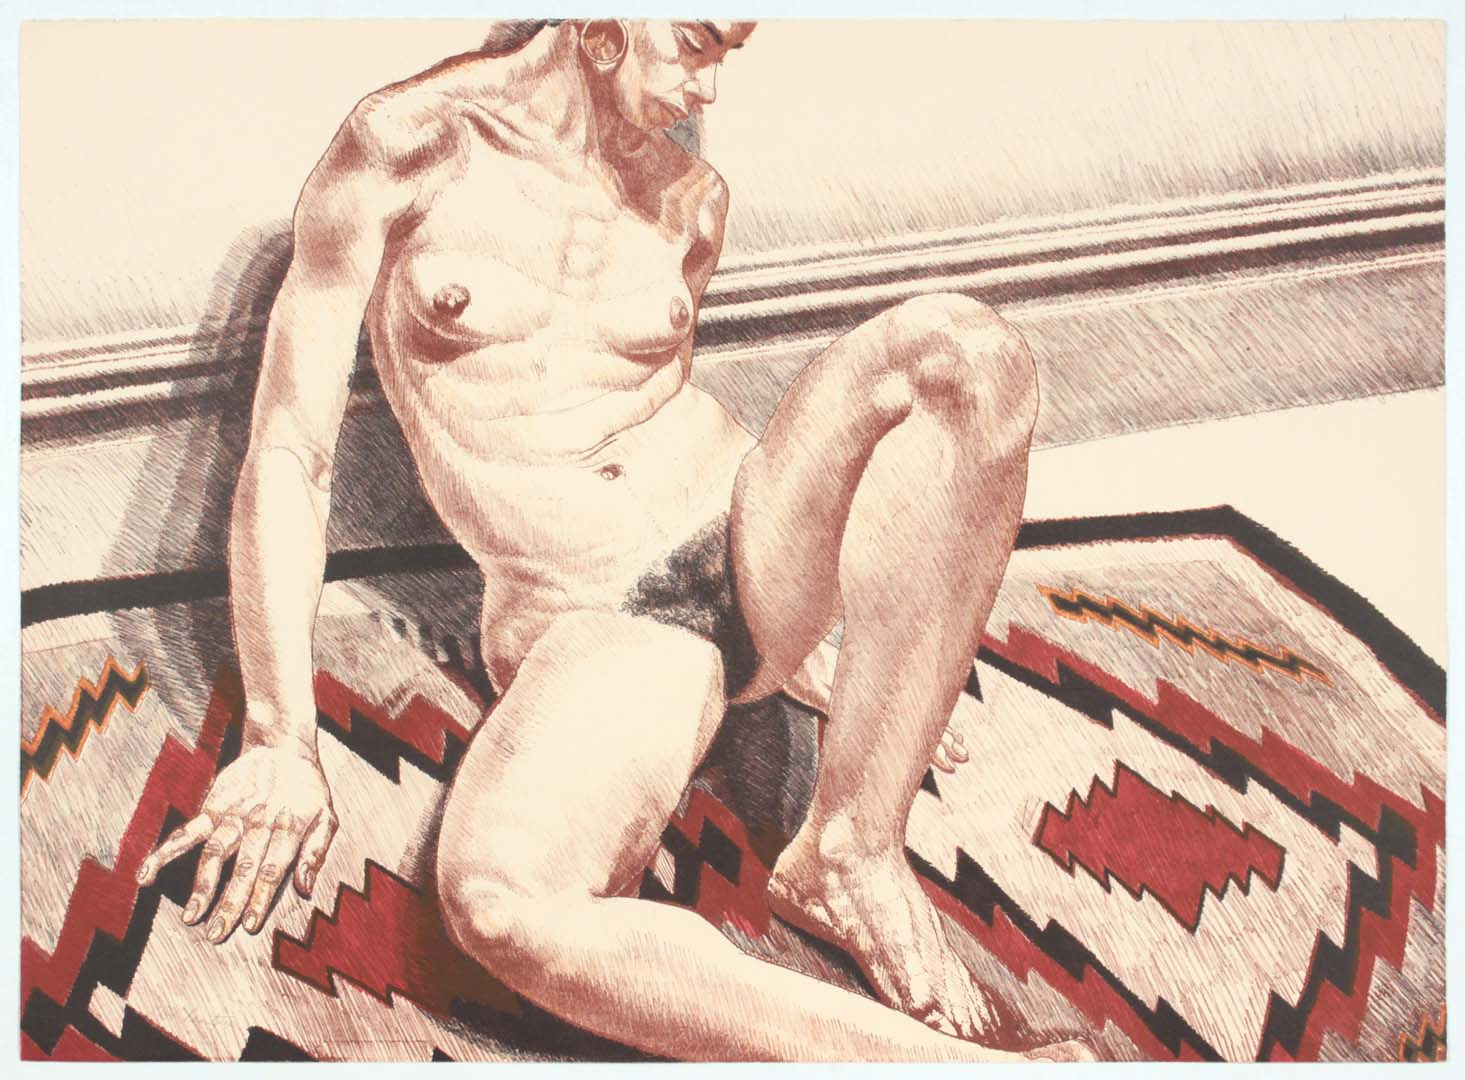 1972 Nude on Navajo Rug Lithograph on Paper 24.5 x 34